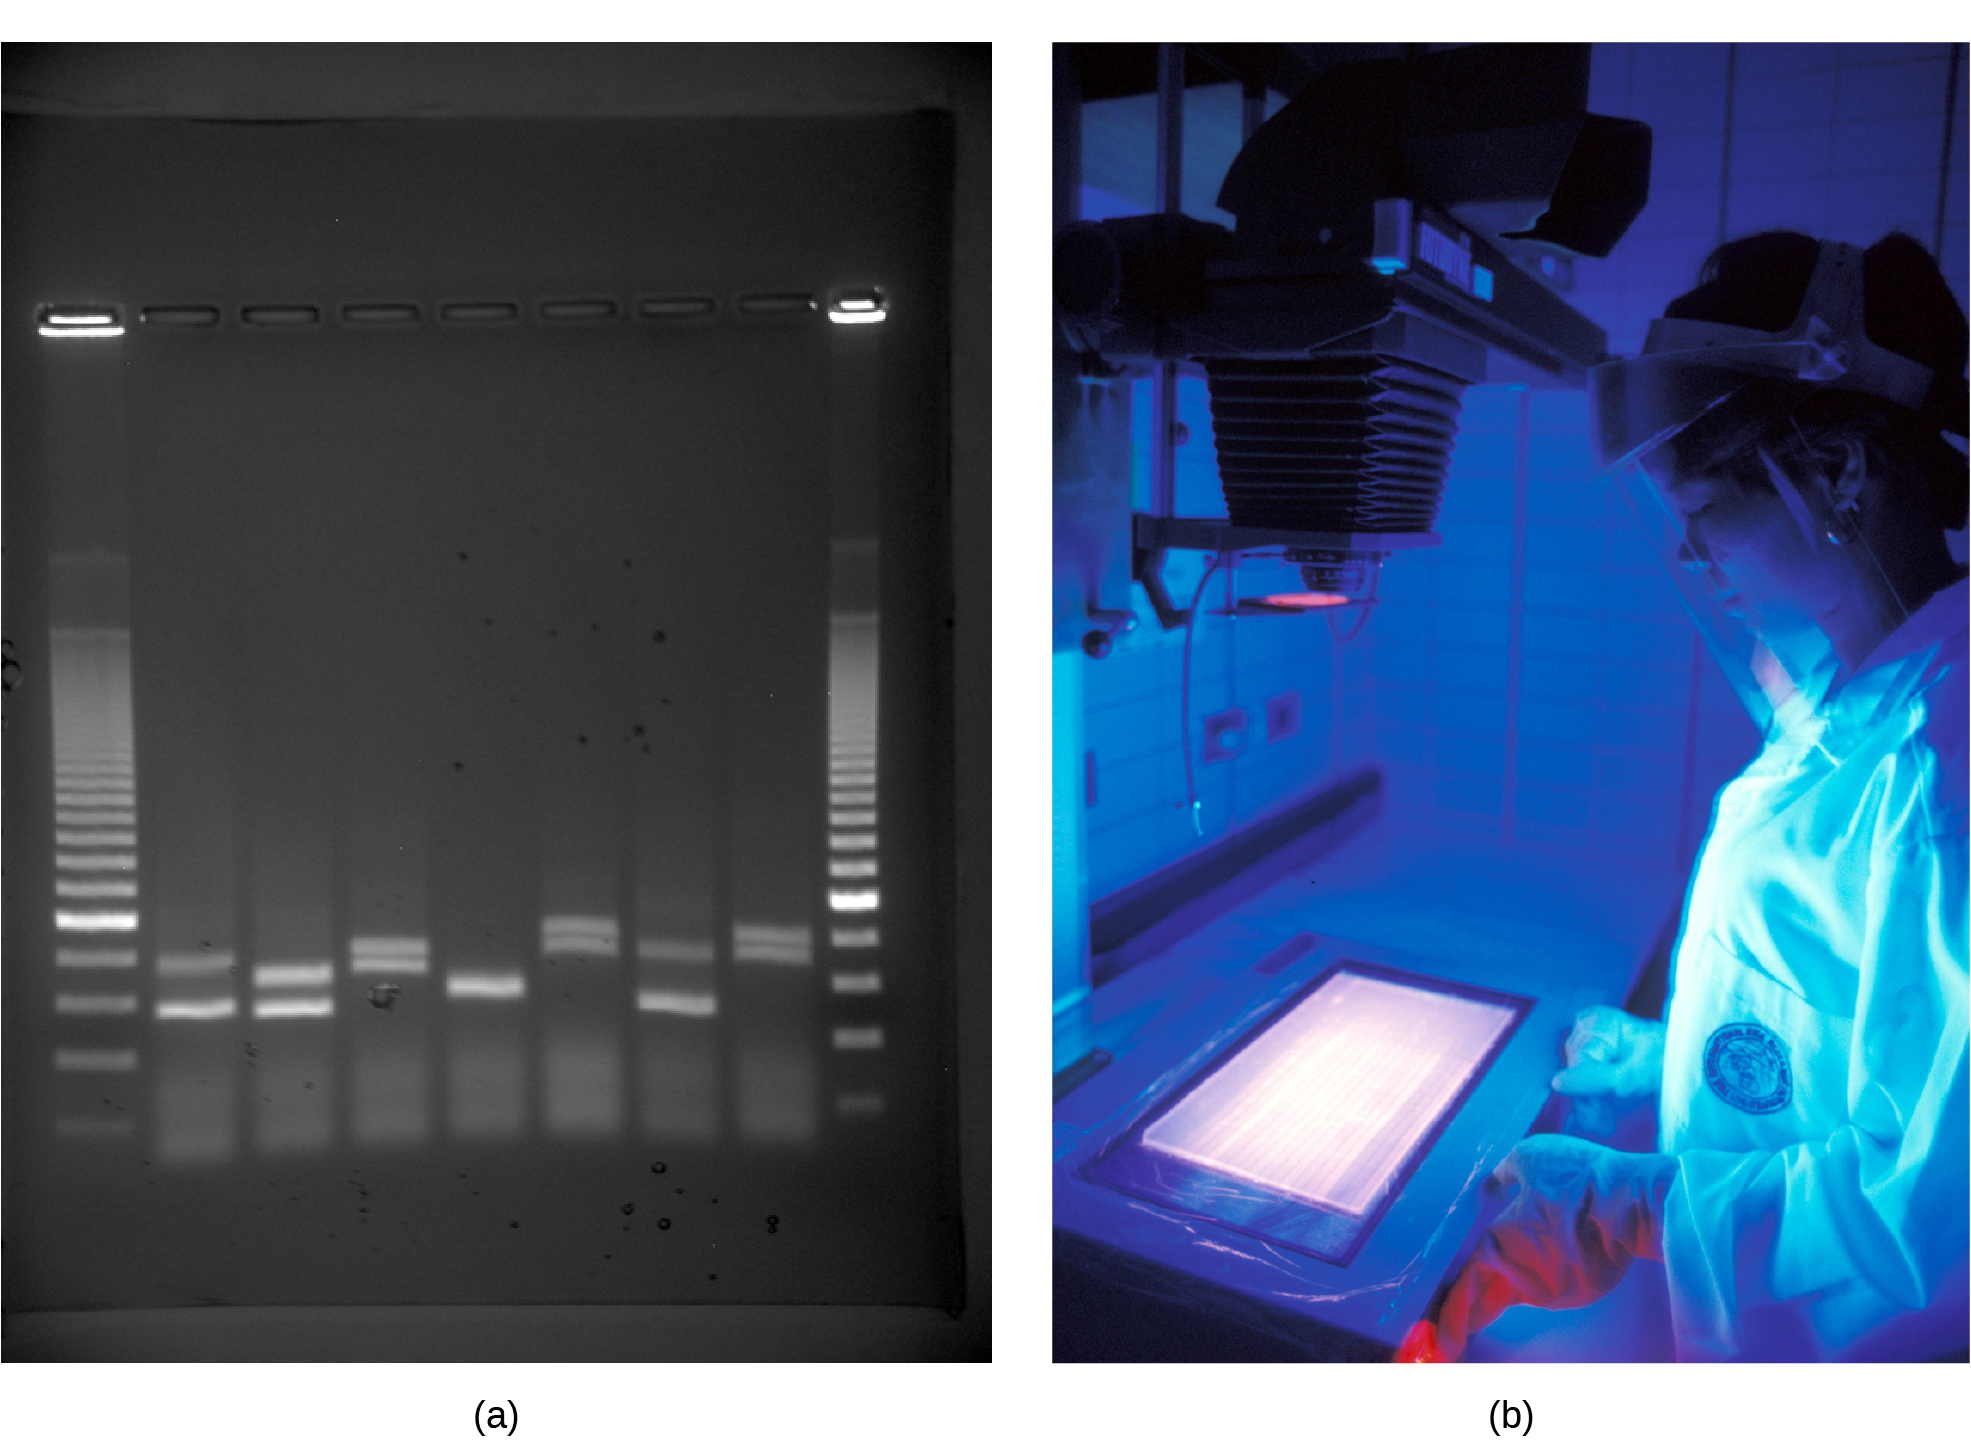 Photo shows an agarose gel illuminated under UV light. The gel contains nine lanes from left to right. Each lane was loaded with a sample containing DNA fragments of differing size that separated as they travelled through the gel from top to bottom. The DNA appears as thin, white bands on a black background. Lanes one and nine contain many bands from a DNA standard. These bands are closely spaced toward the top, and spaced farther apart further down the gel. Lanes two through eight contain one or two bands each. Some of these bands are identical in size and run the same distance into the gel. Others run a slightly different distance, indicating a small difference in size. Image b shows a researcher working at a machine where she is observing DNA under ultraviolet light.